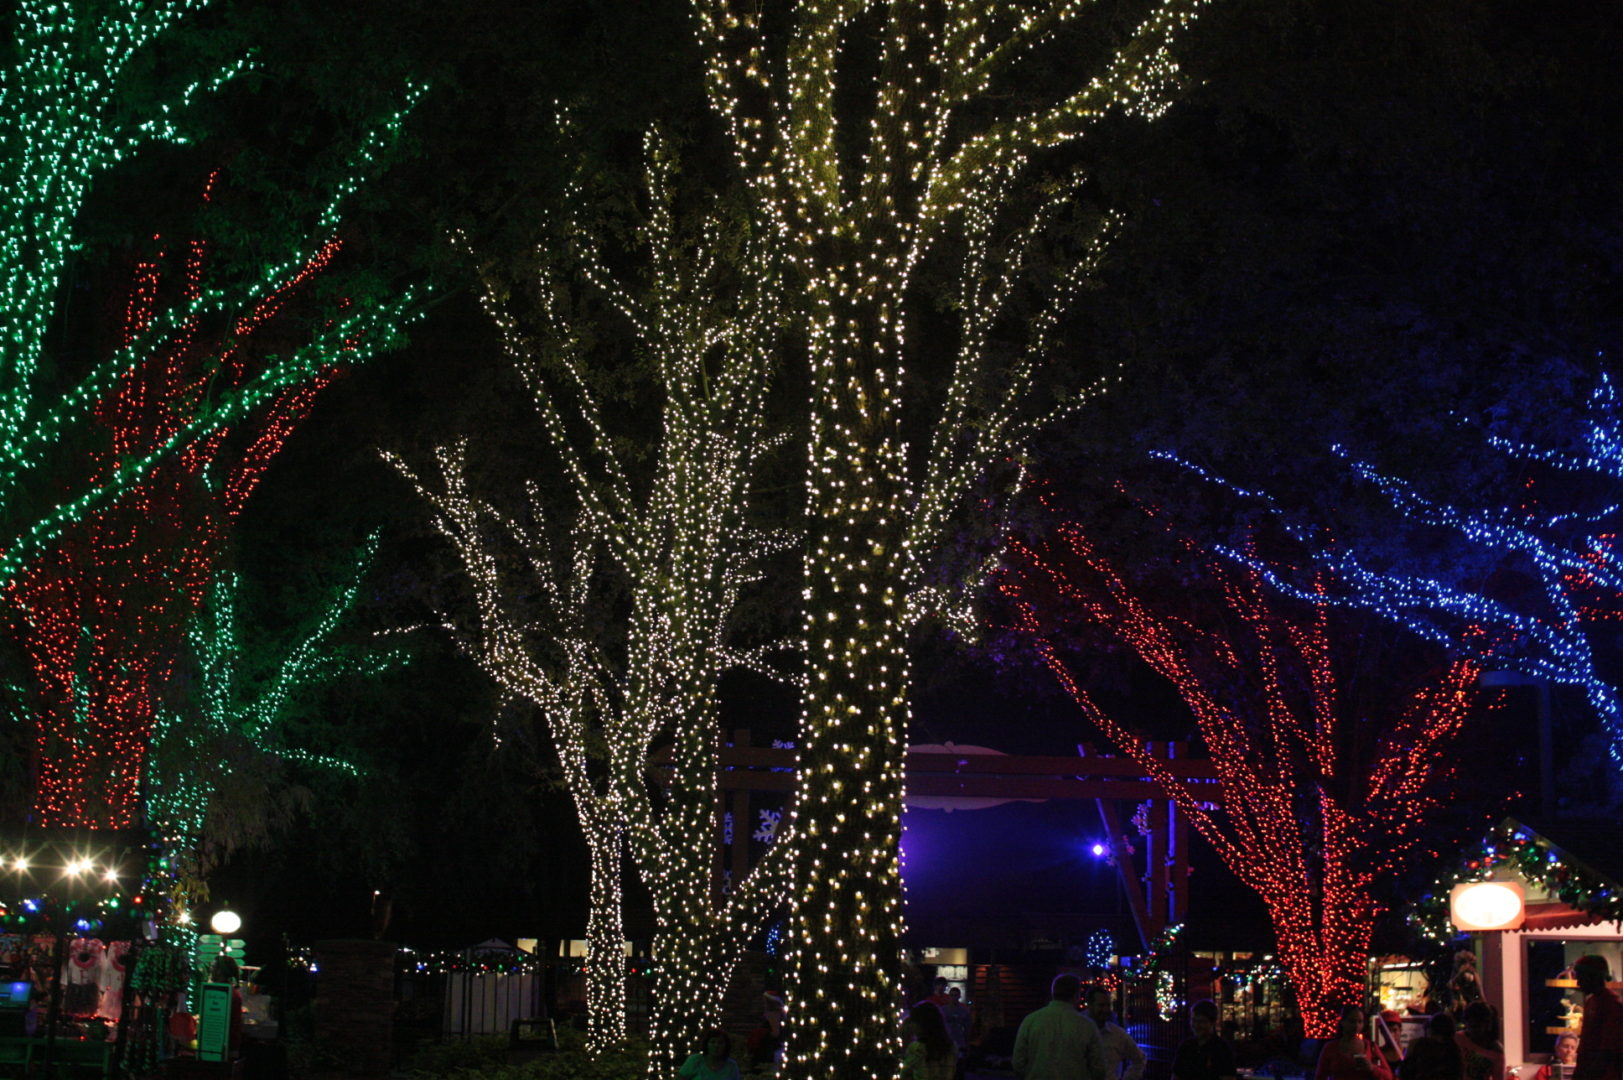 Christmas town at busch gardens delivers - Busch gardens tampa christmas town ...